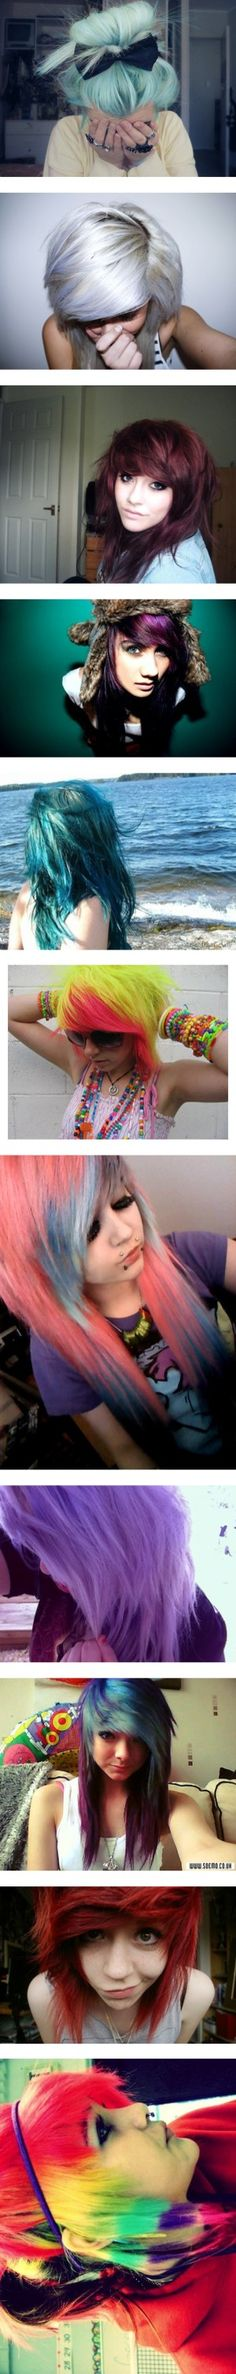 """Dyed Hair"" by samanthastar ❤ liked on Polyvore The first three."